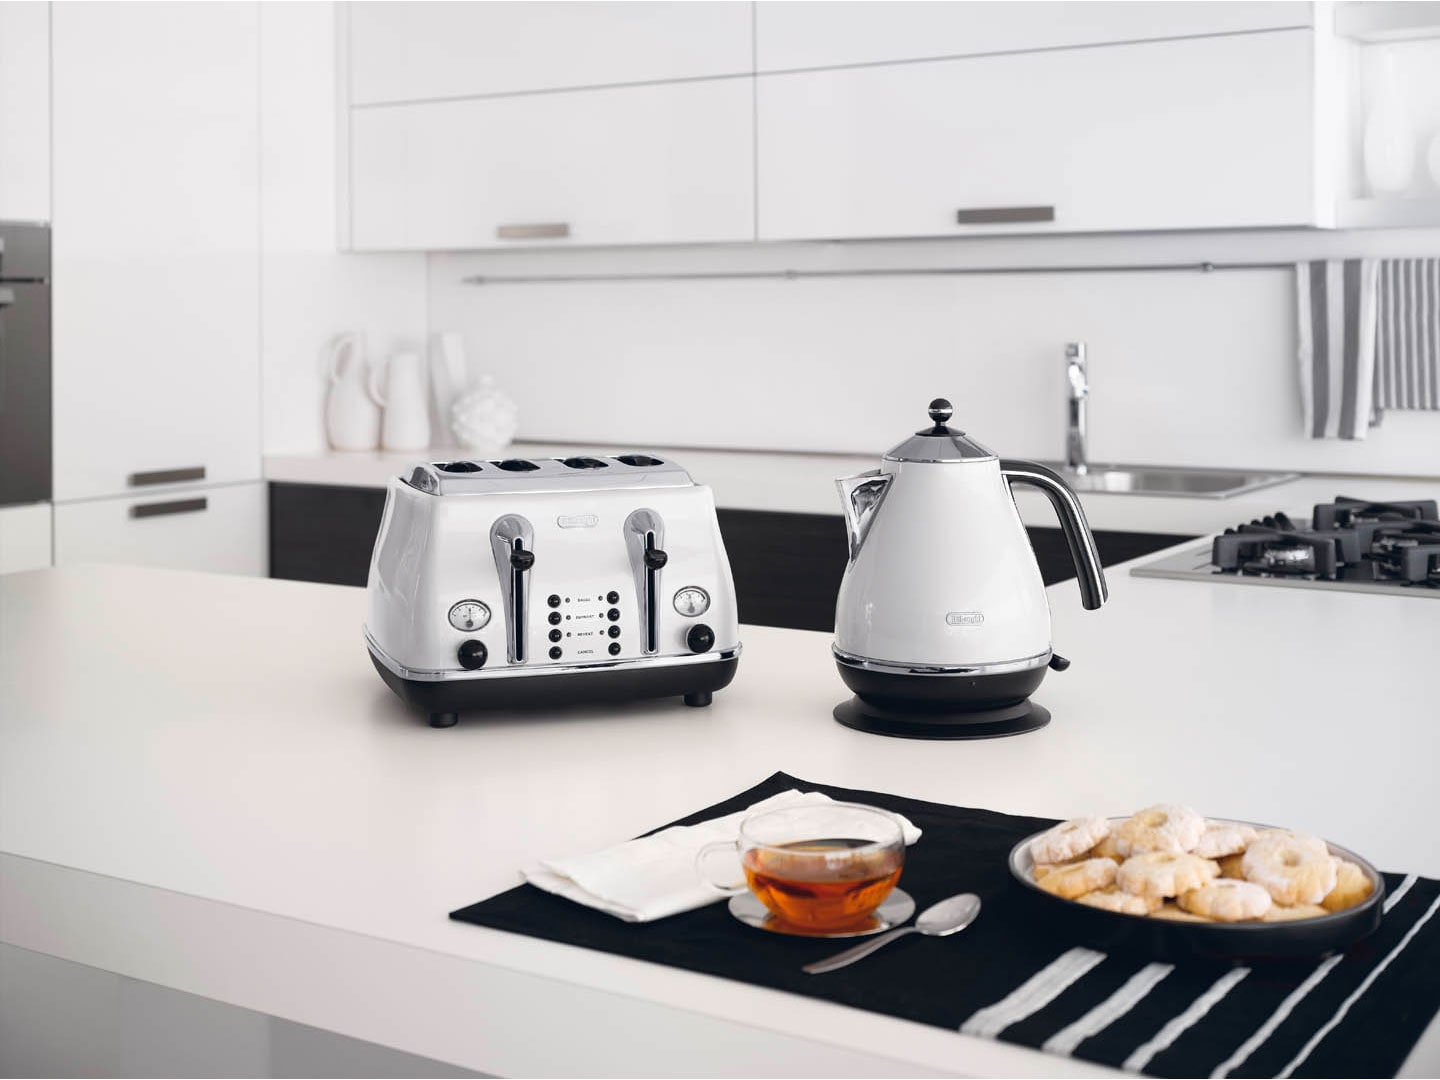 Uncategorized Delonghi Kitchen Appliances delonghi kettle kbo1401 w icona design collection